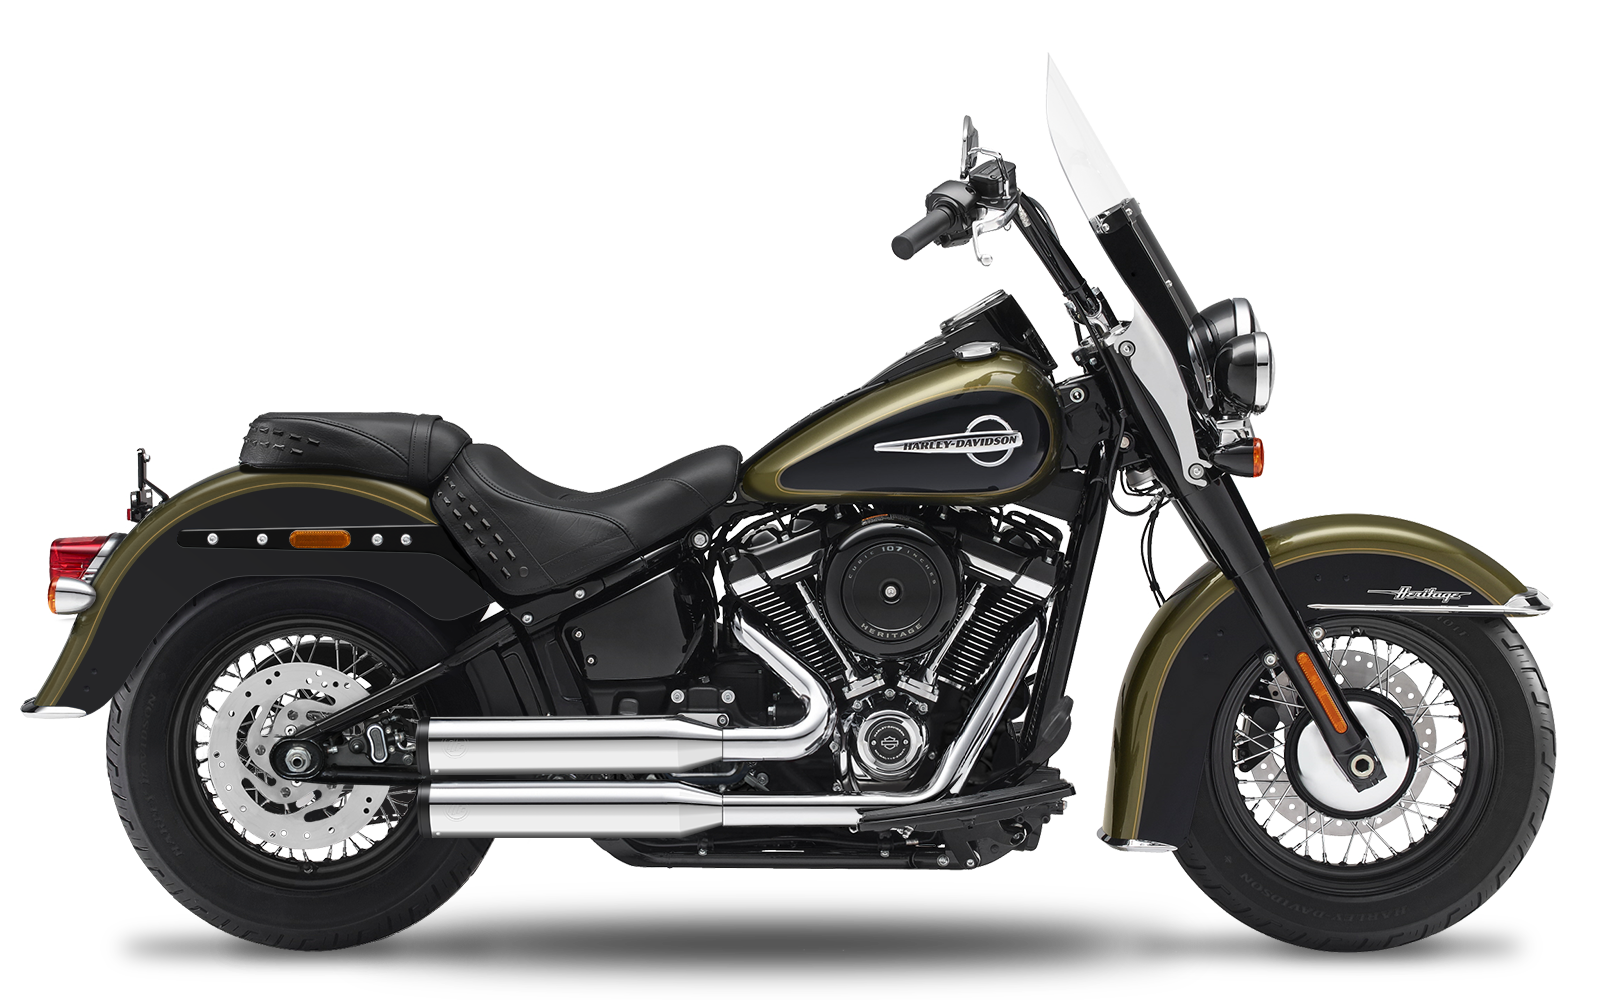 Softail - Heritage Classic - ME107 - 2018-2019 - Complete systems